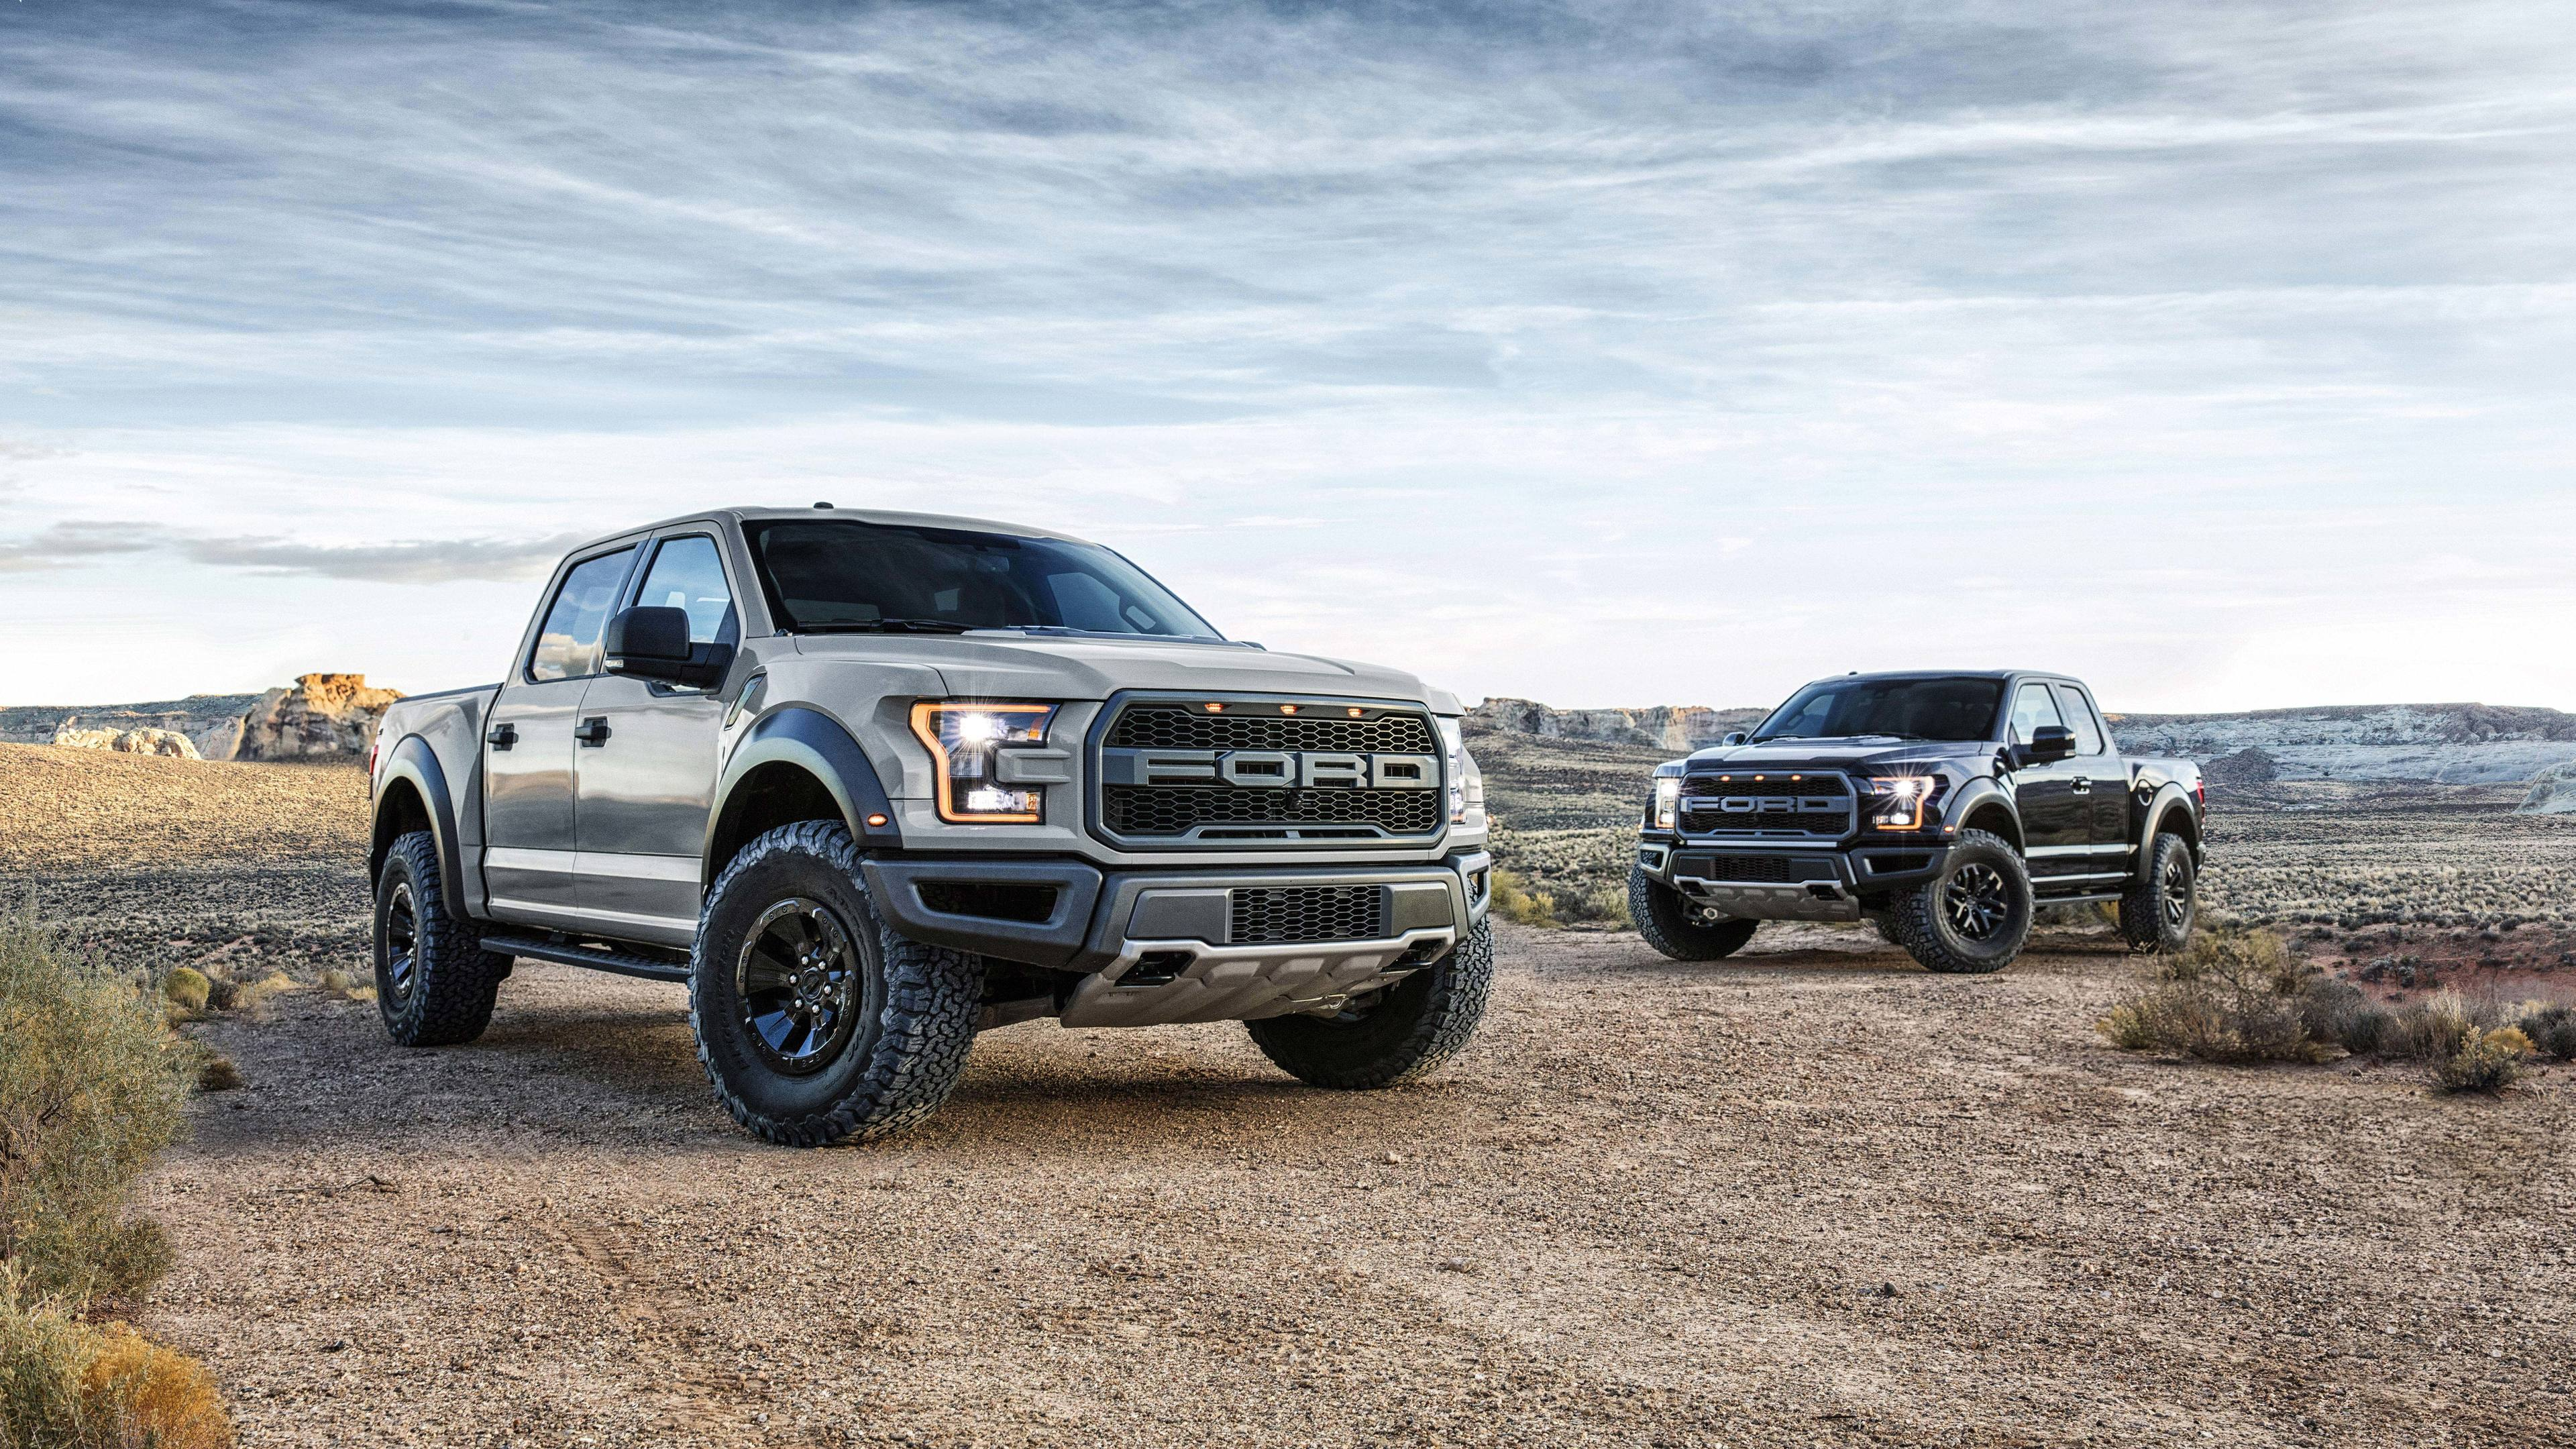 ford f150 raptor 1539105176 - Ford F150 Raptor - truck wallpapers, hd-wallpapers, ford wallpapers, ford raptor wallpapers, cars wallpapers, 5k wallpapers, 4k-wallpapers